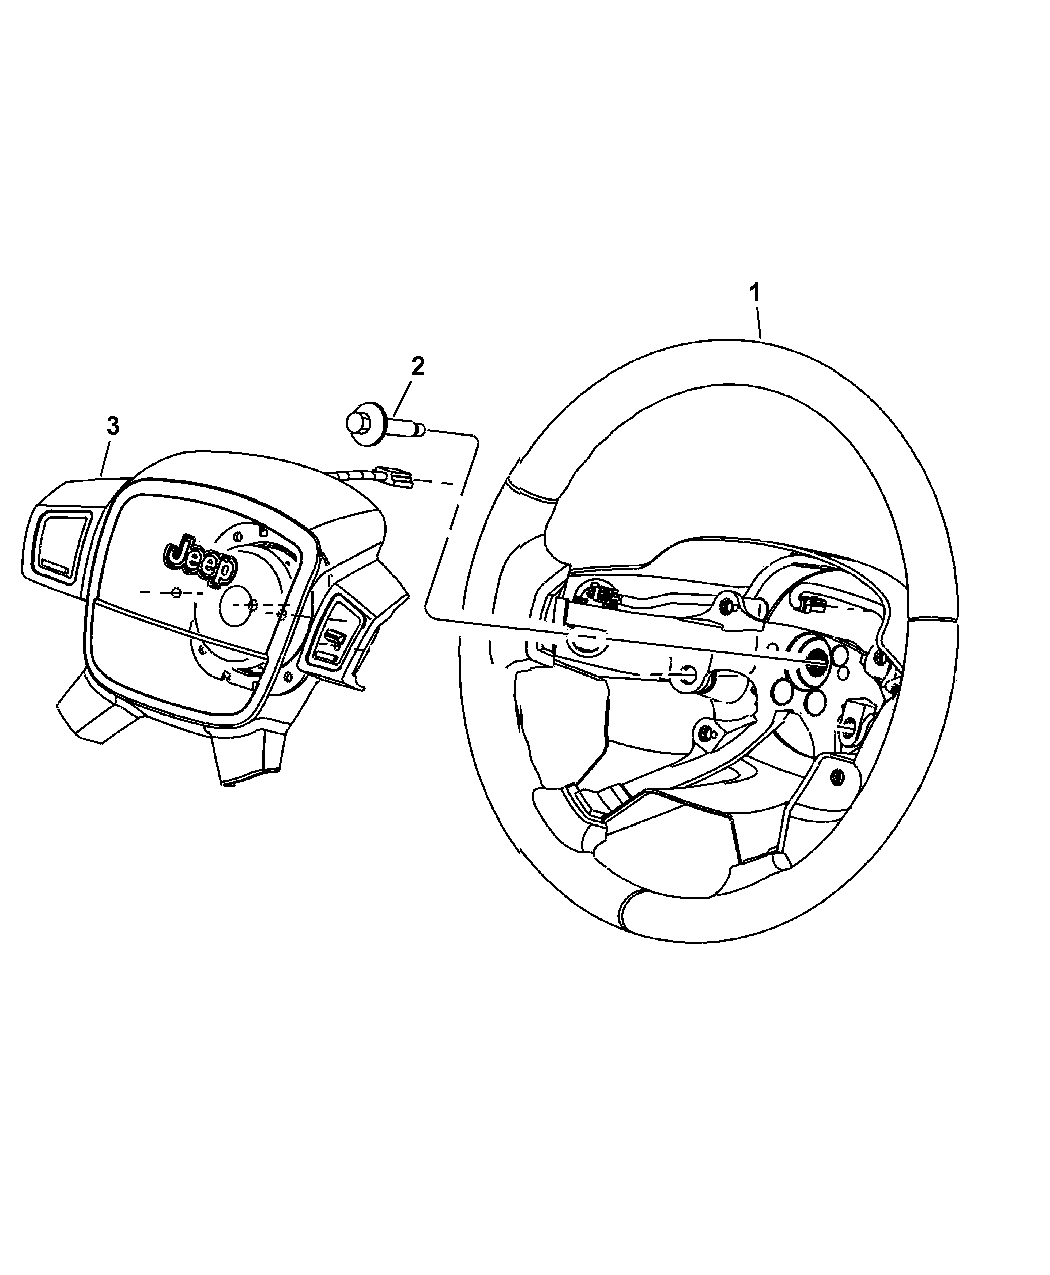 2008 Jeep Grand Cherokee Steering Wheel Assembly